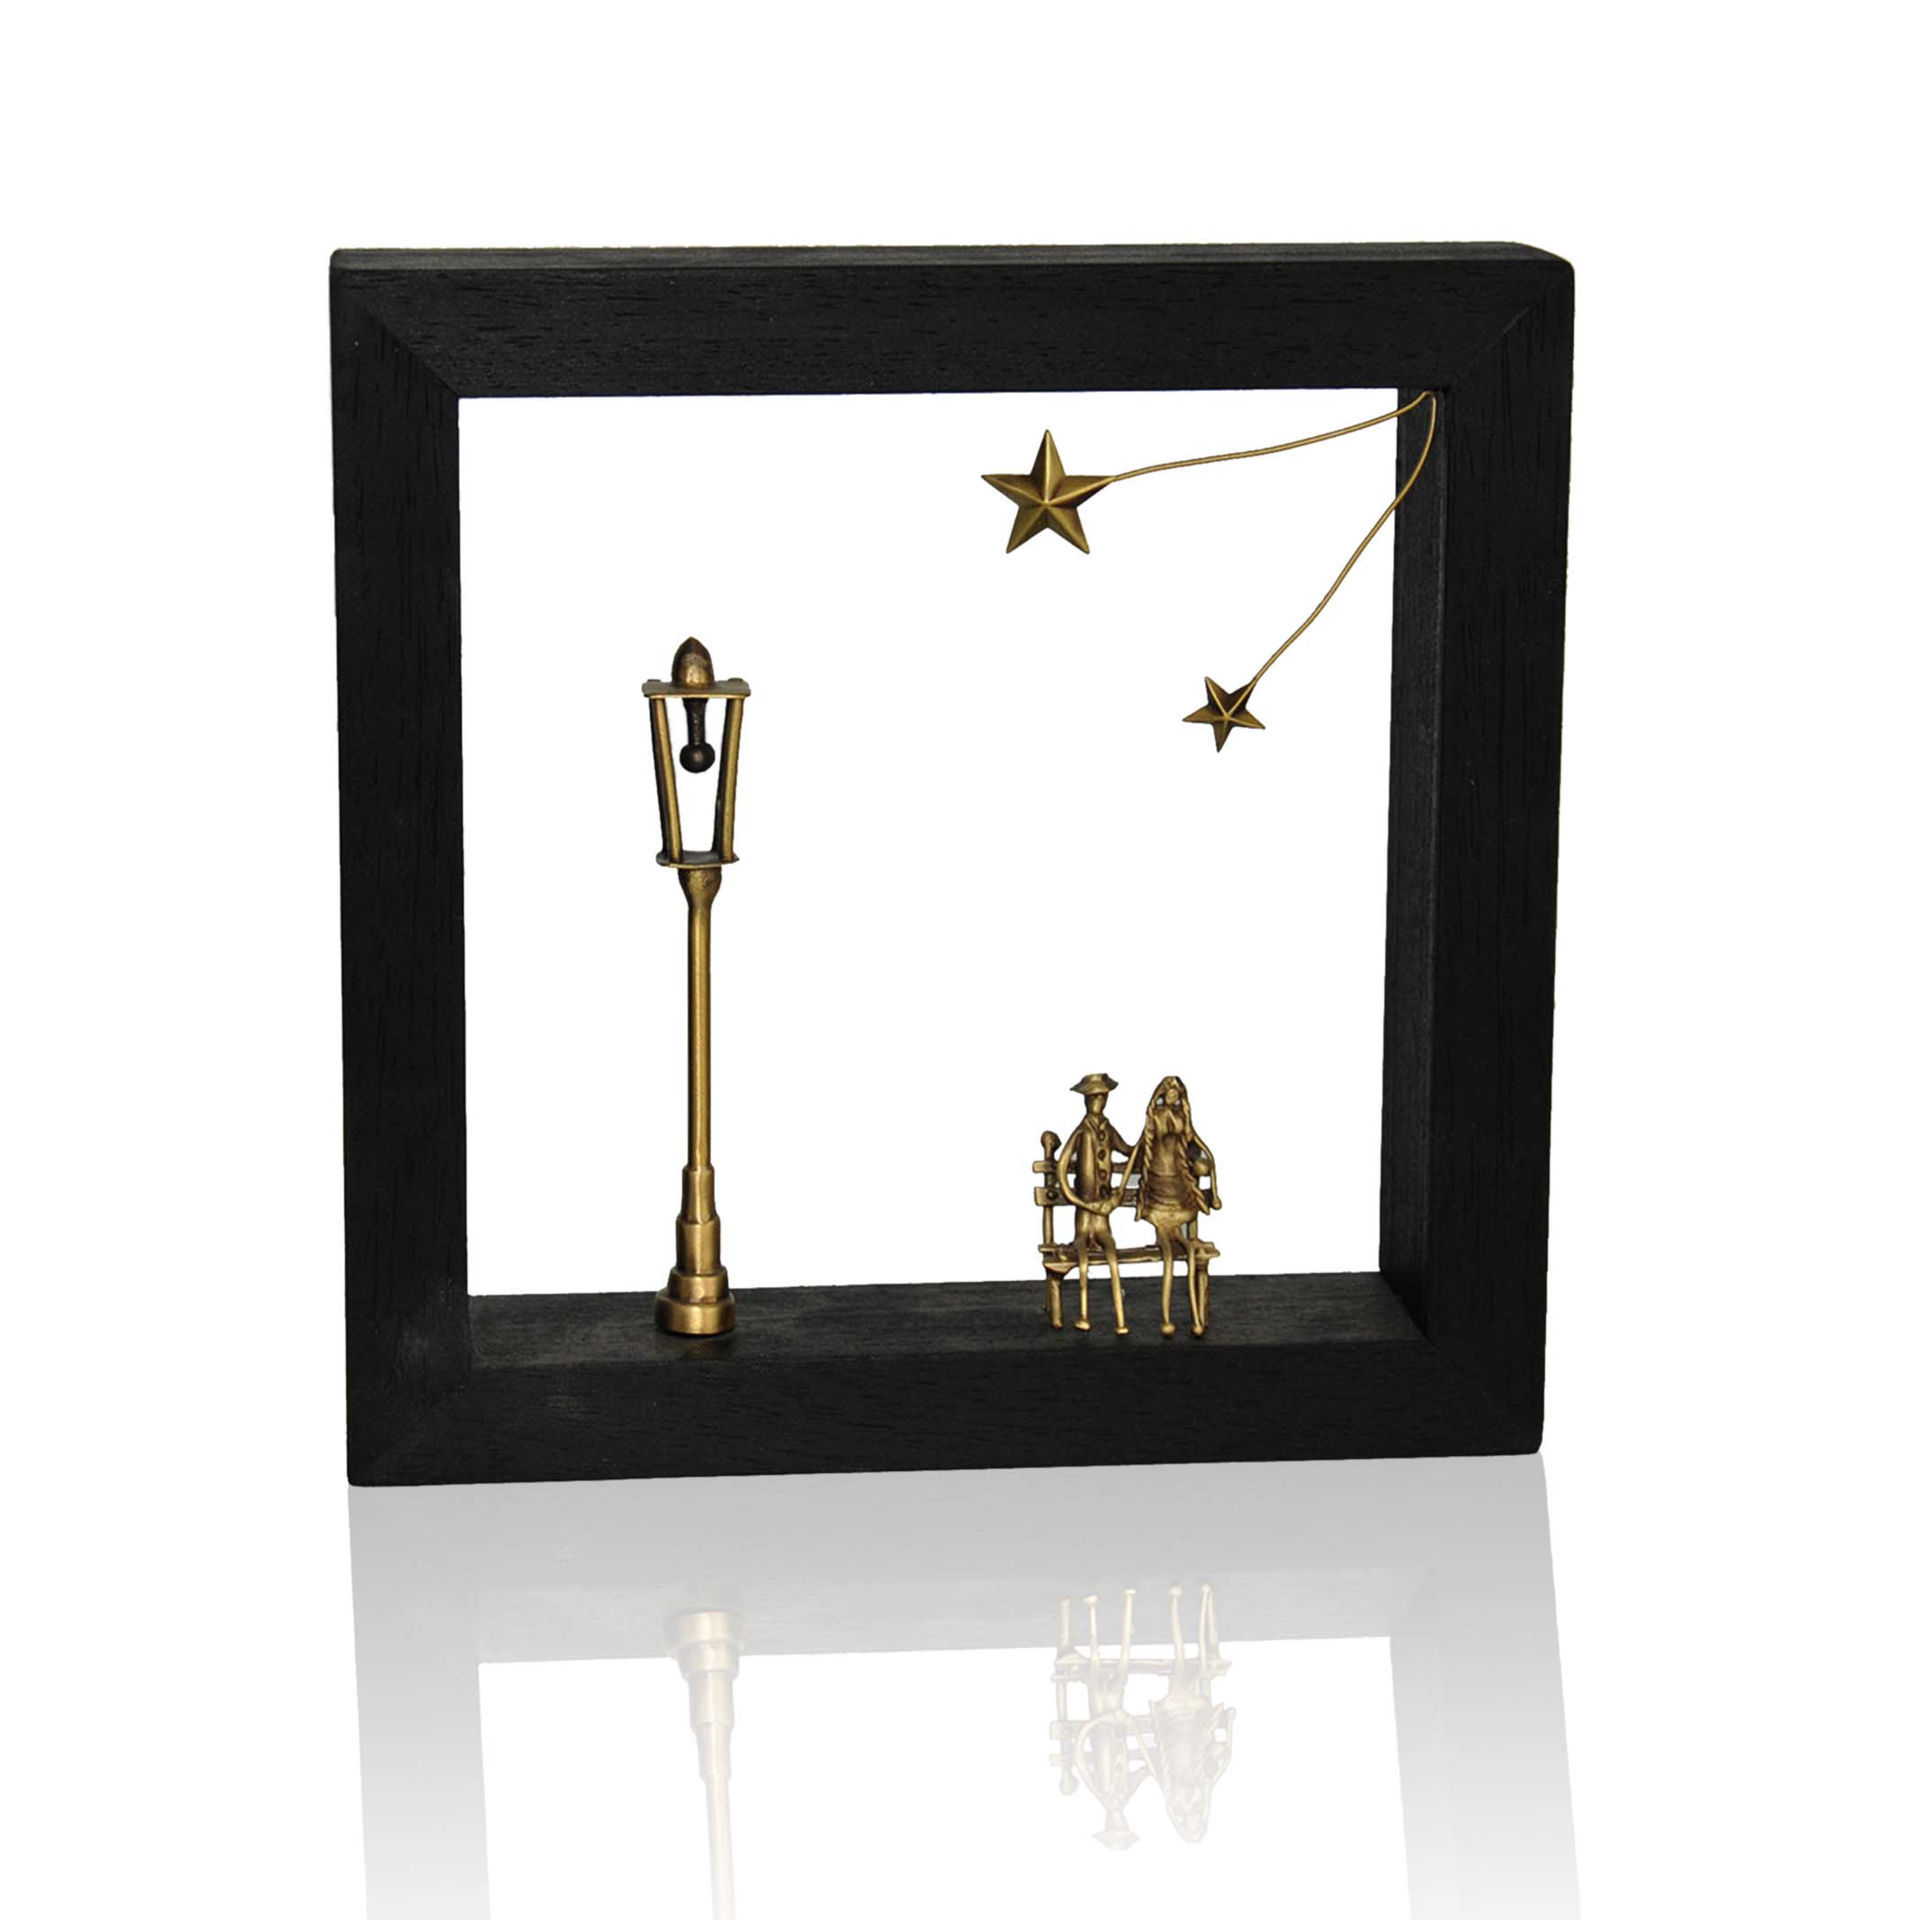 Picture of Wall Frame Décor - Under the Lights